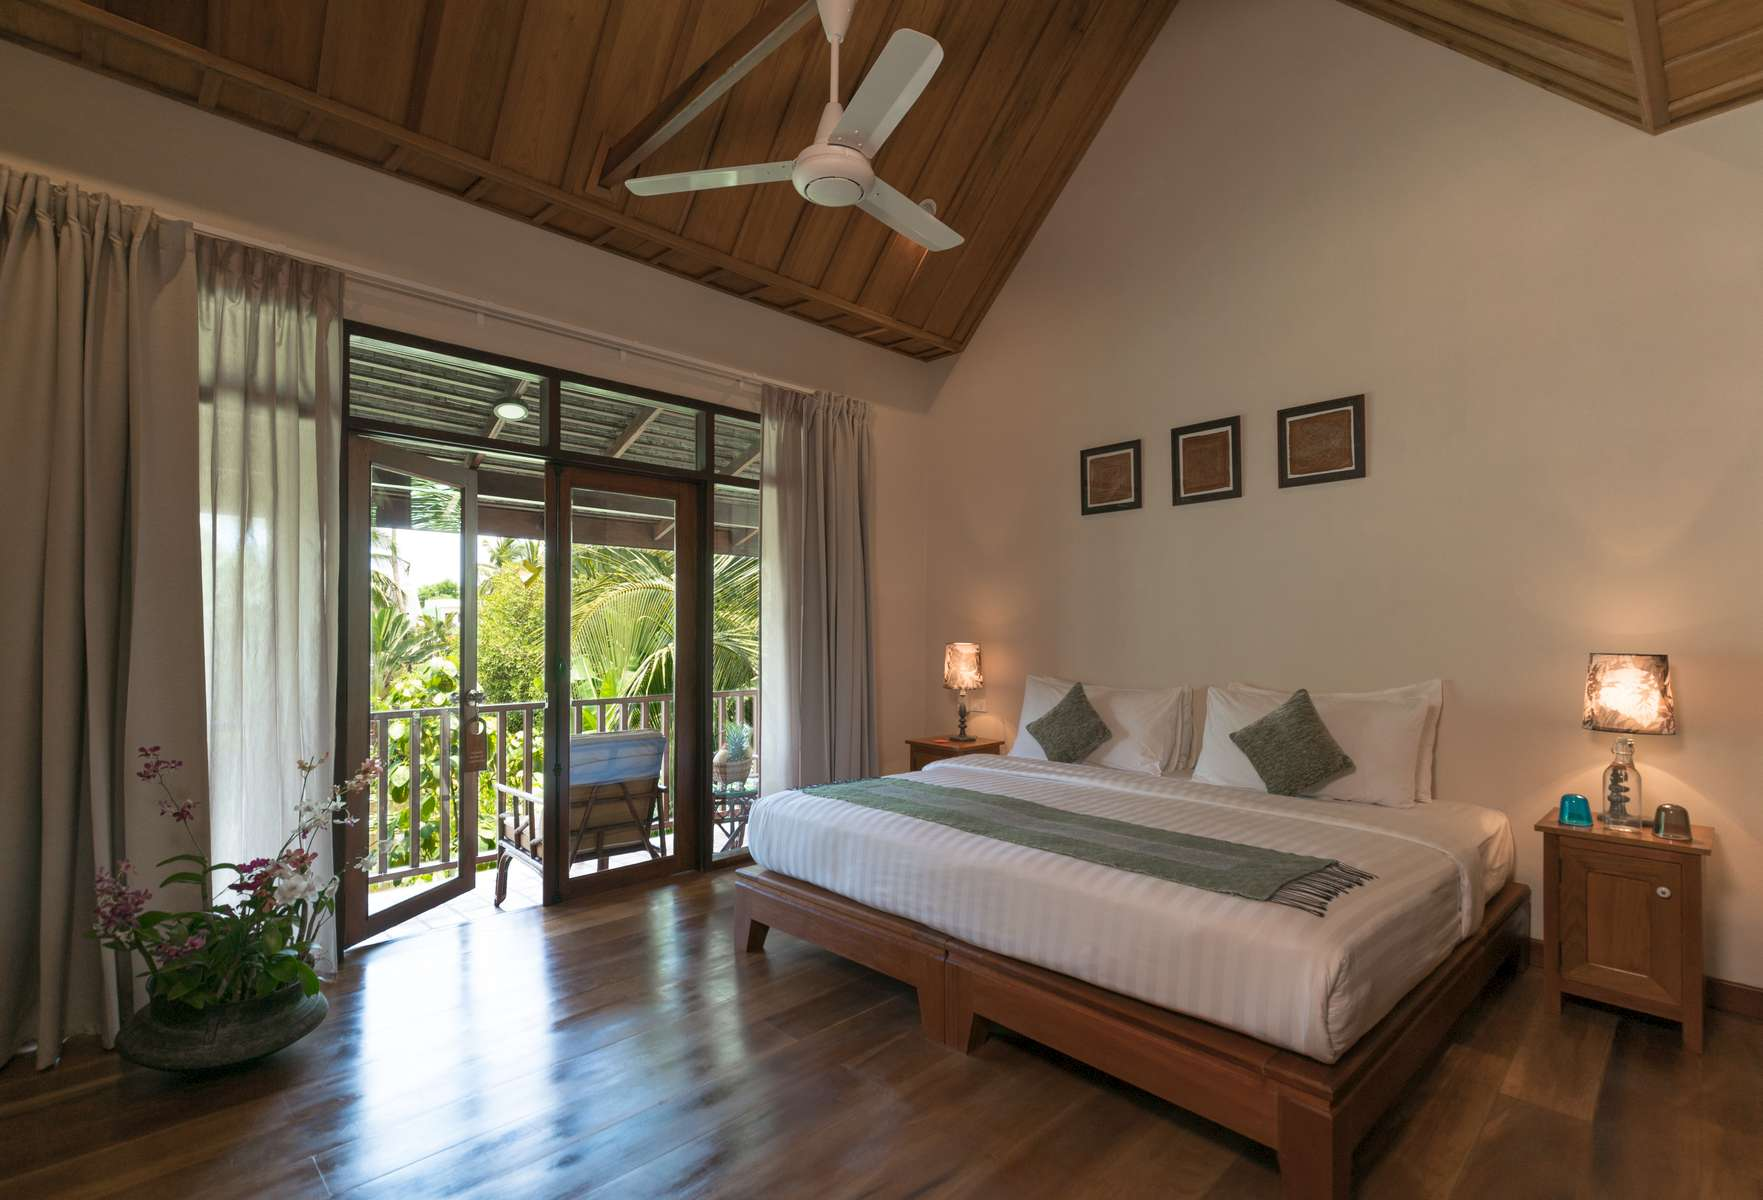 Maison_DaLaBua_Hotel_Luang_Prabang_Laos_Photo-by-Cyril-Eberle-DSC08846